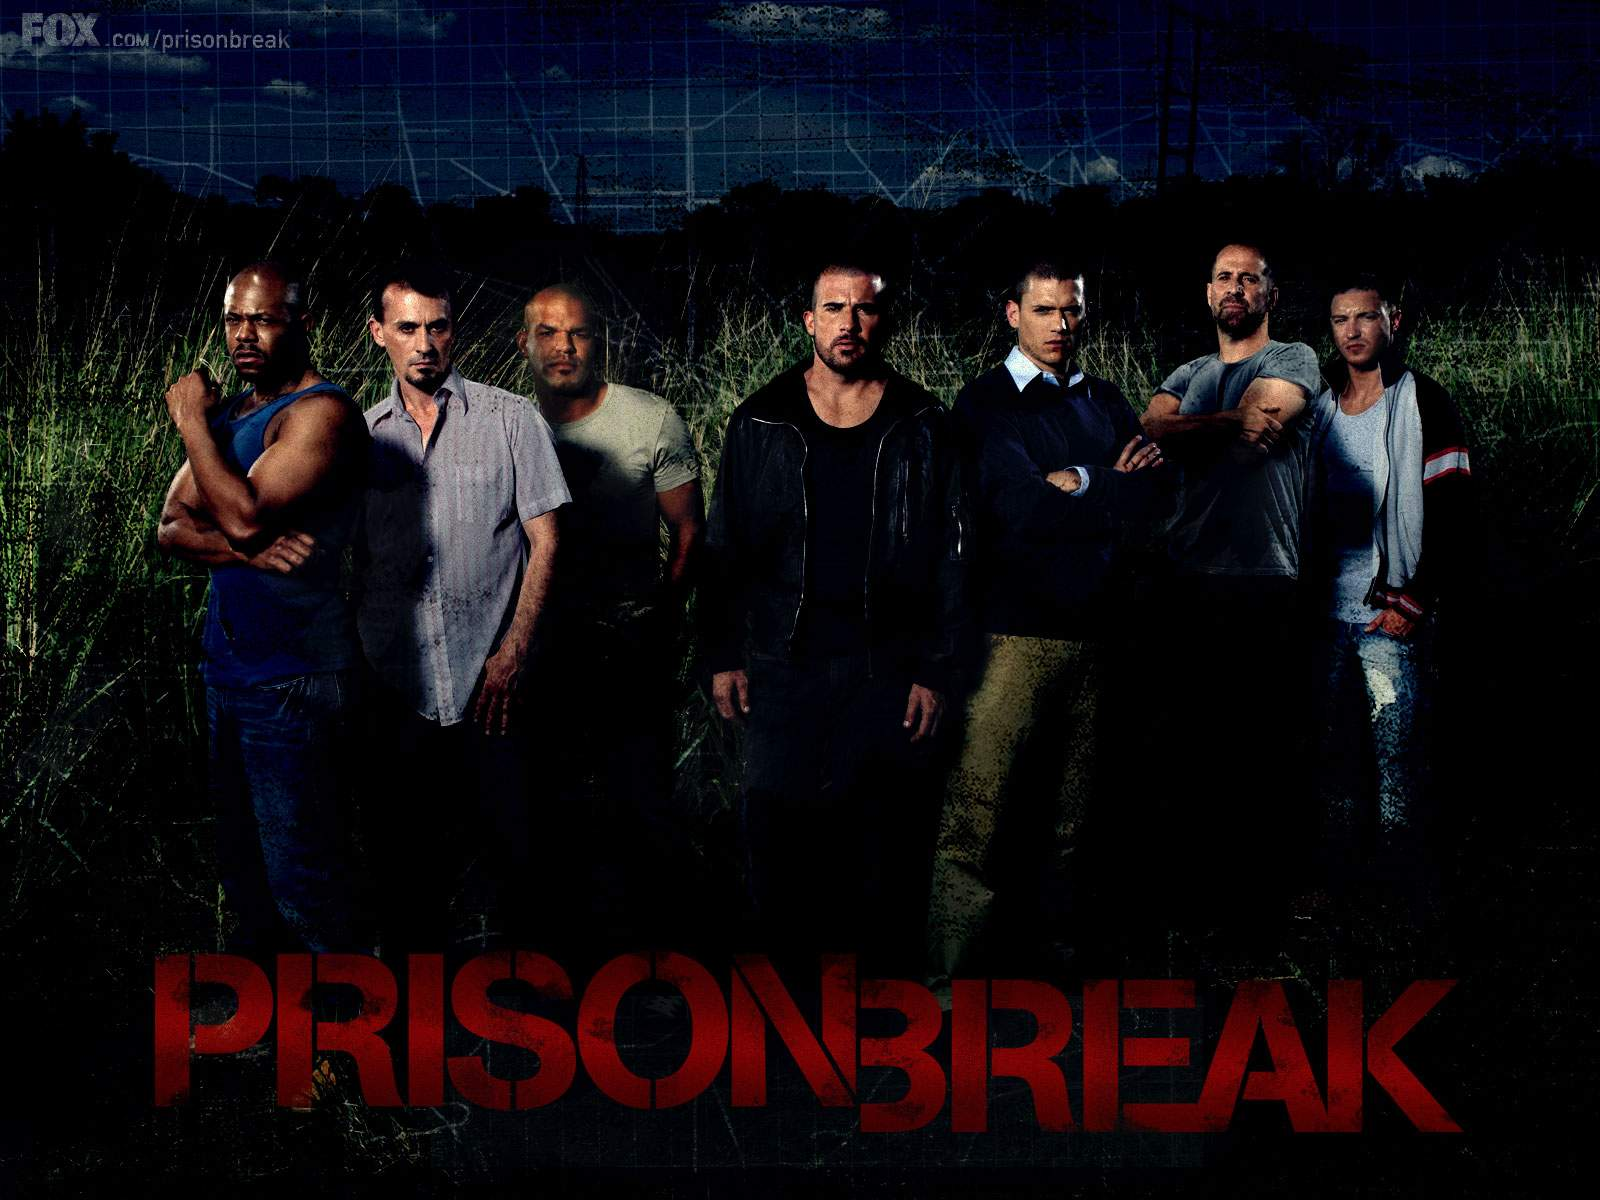 prison break season 2 poster 1